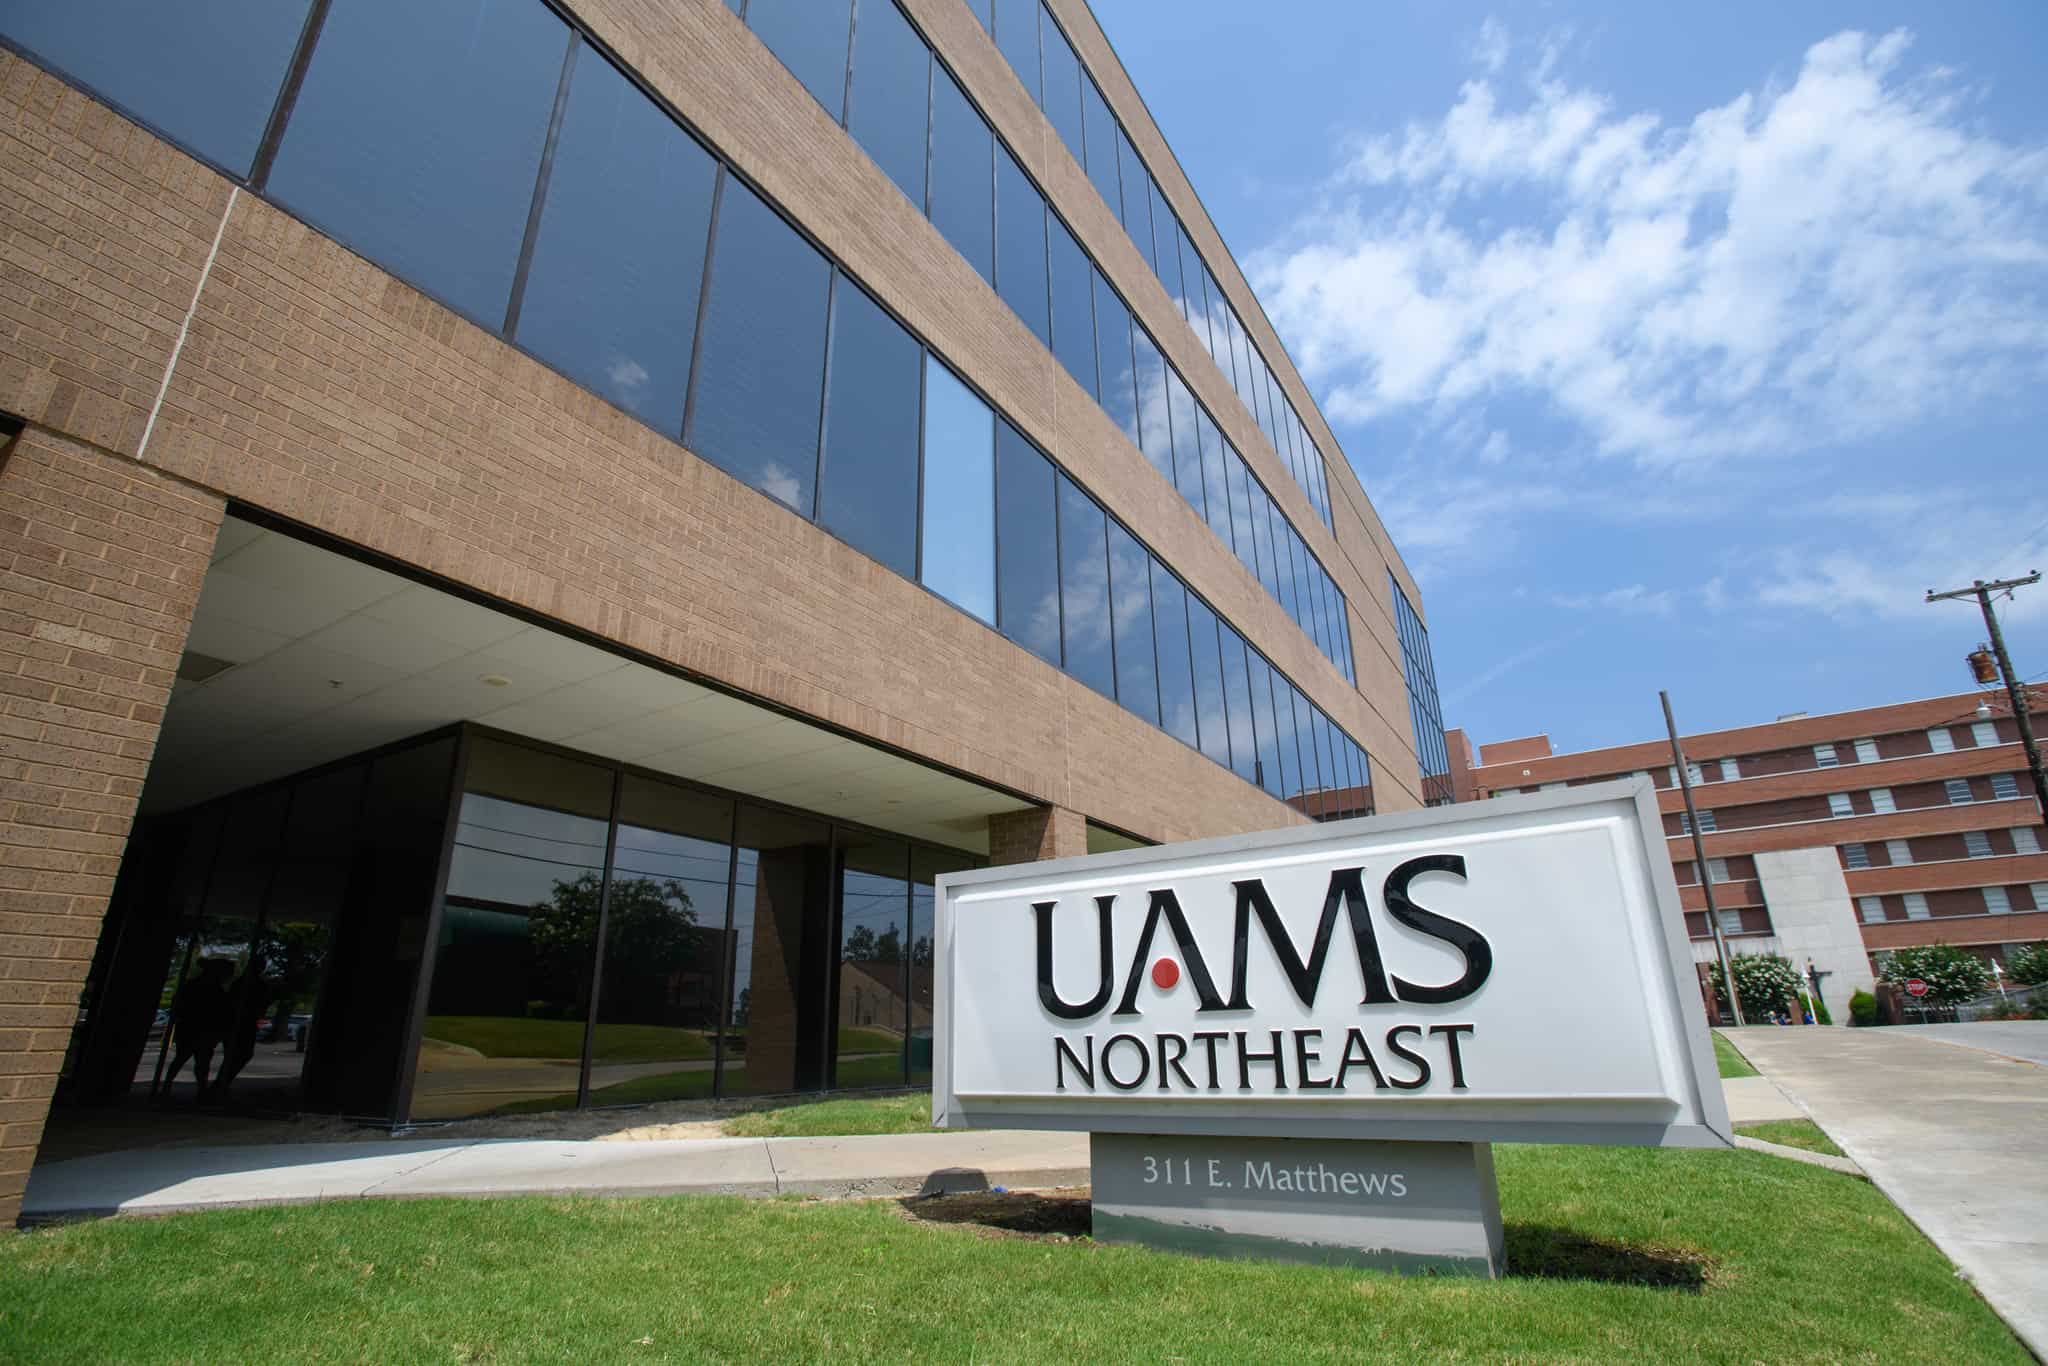 Picture is of the exterior of the UAMS clinic on the northeast regional campus.